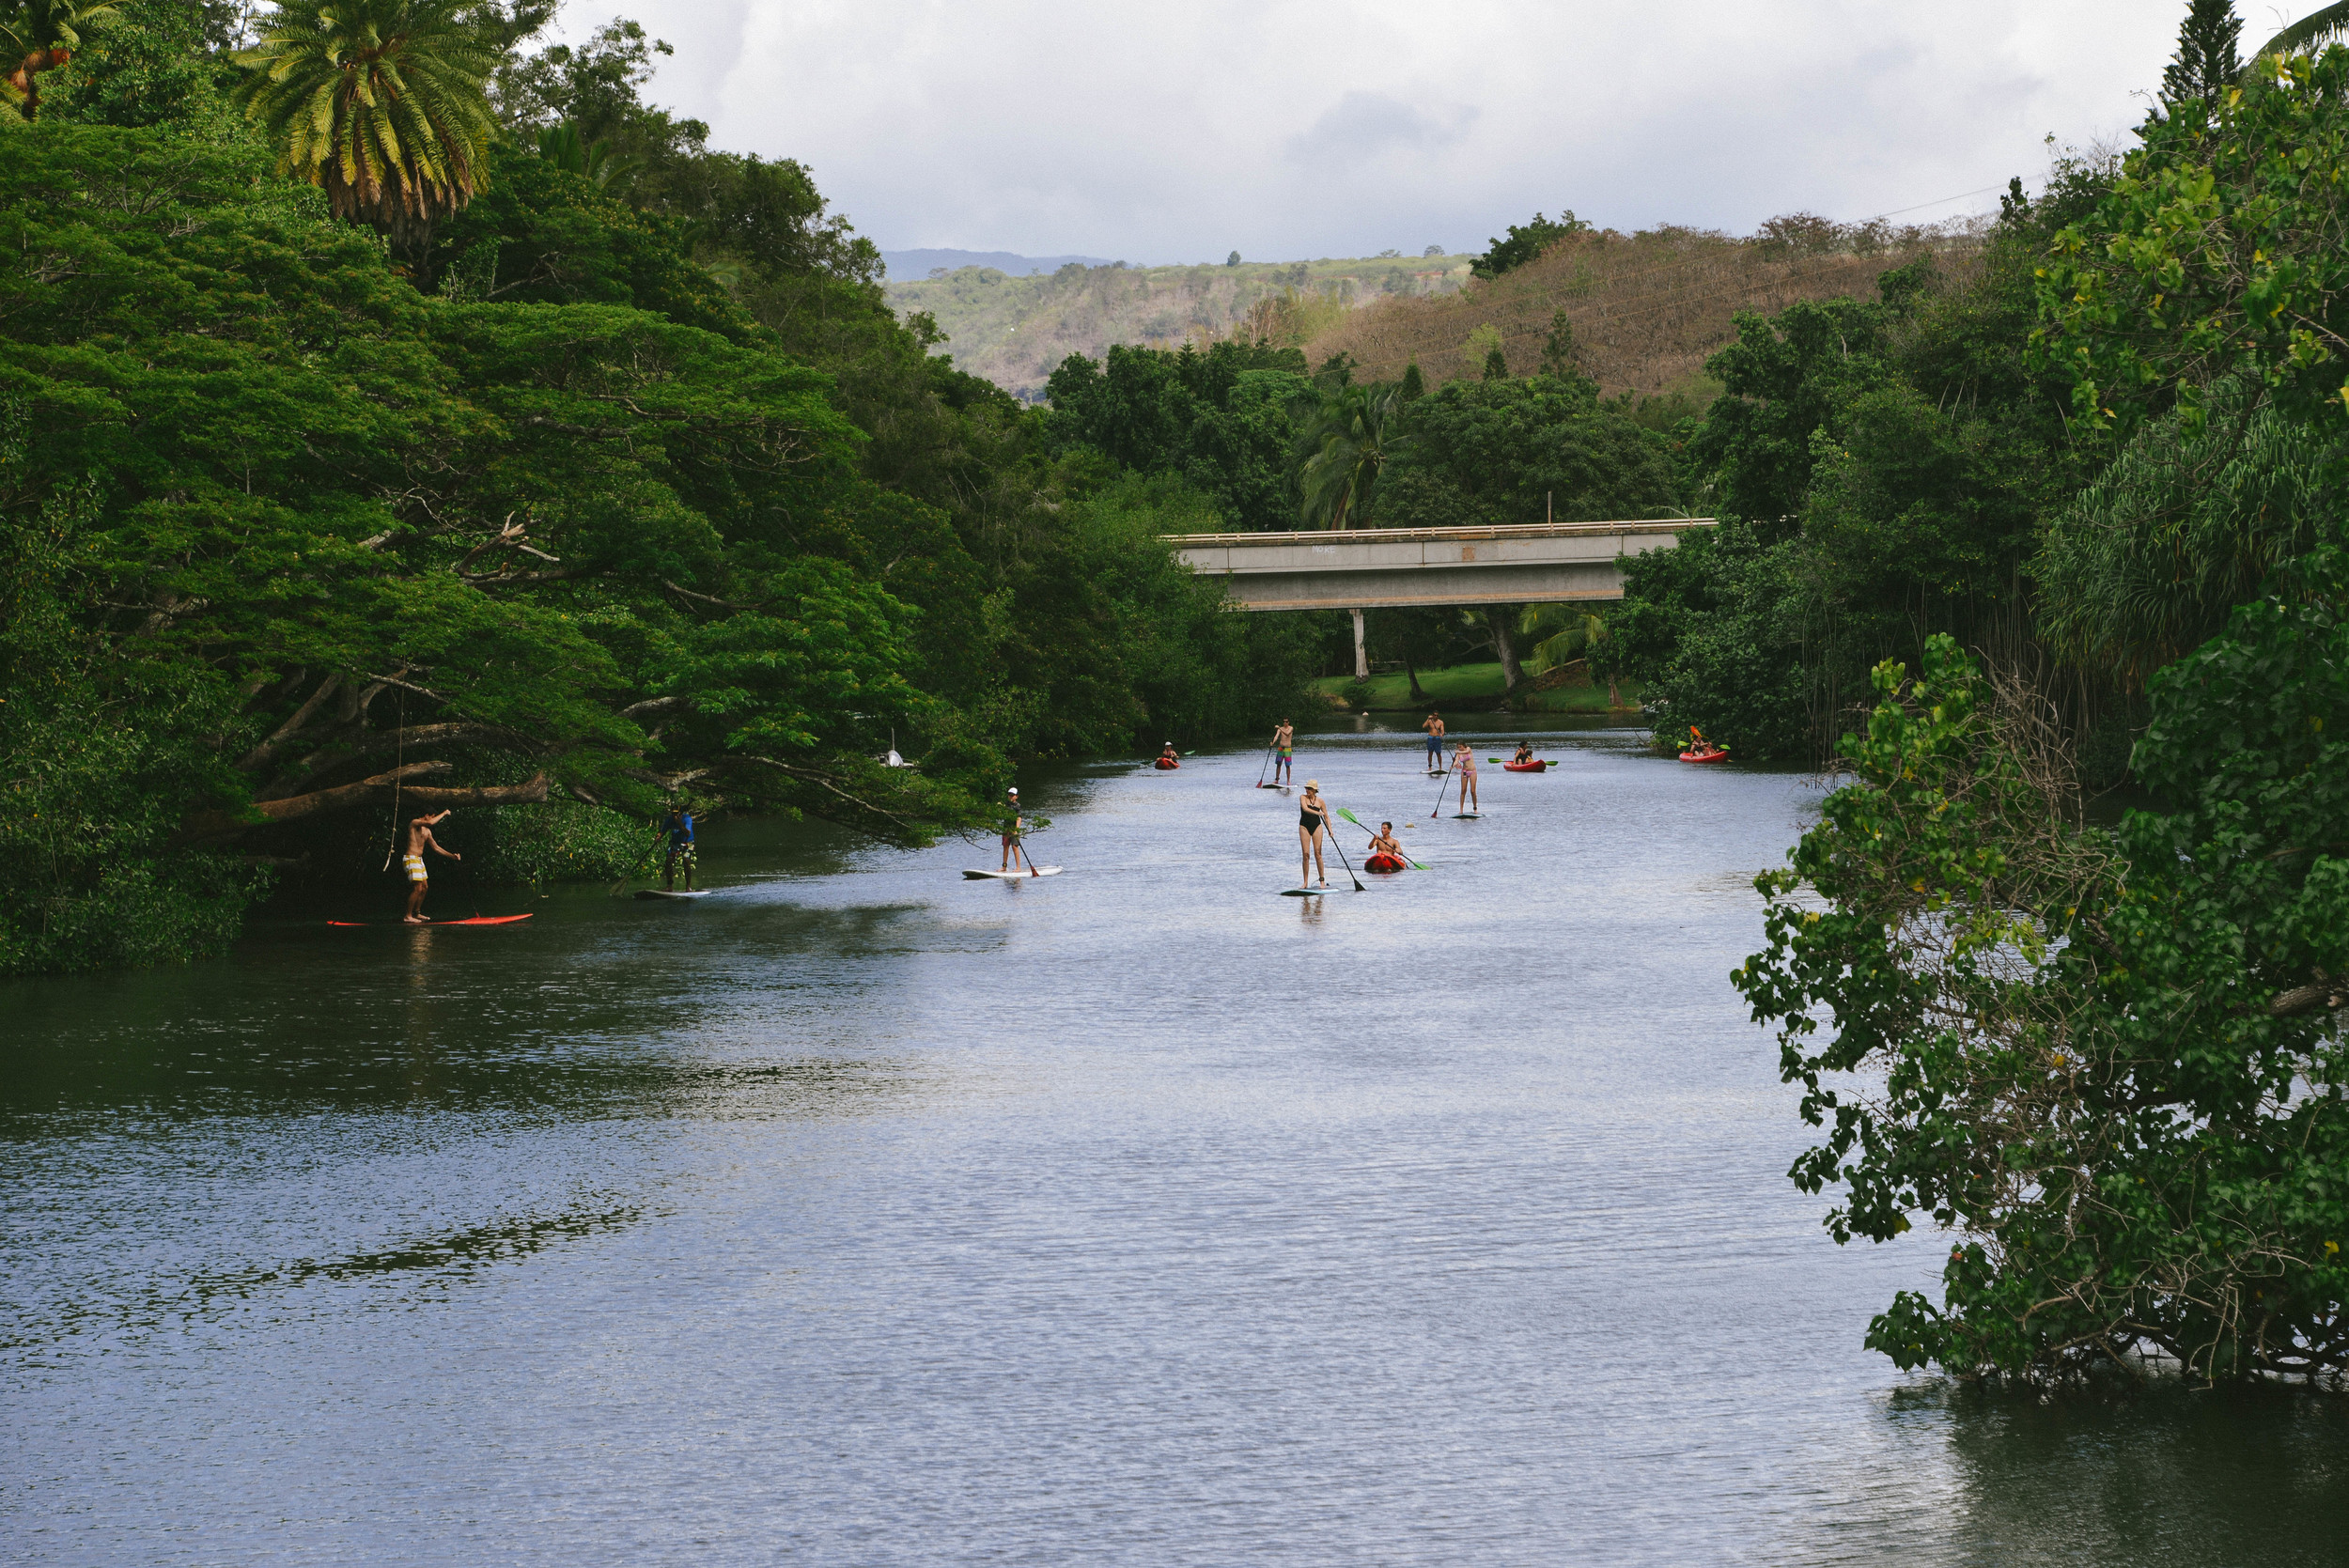 SUP on the Haleiwa inlet, Oahu.